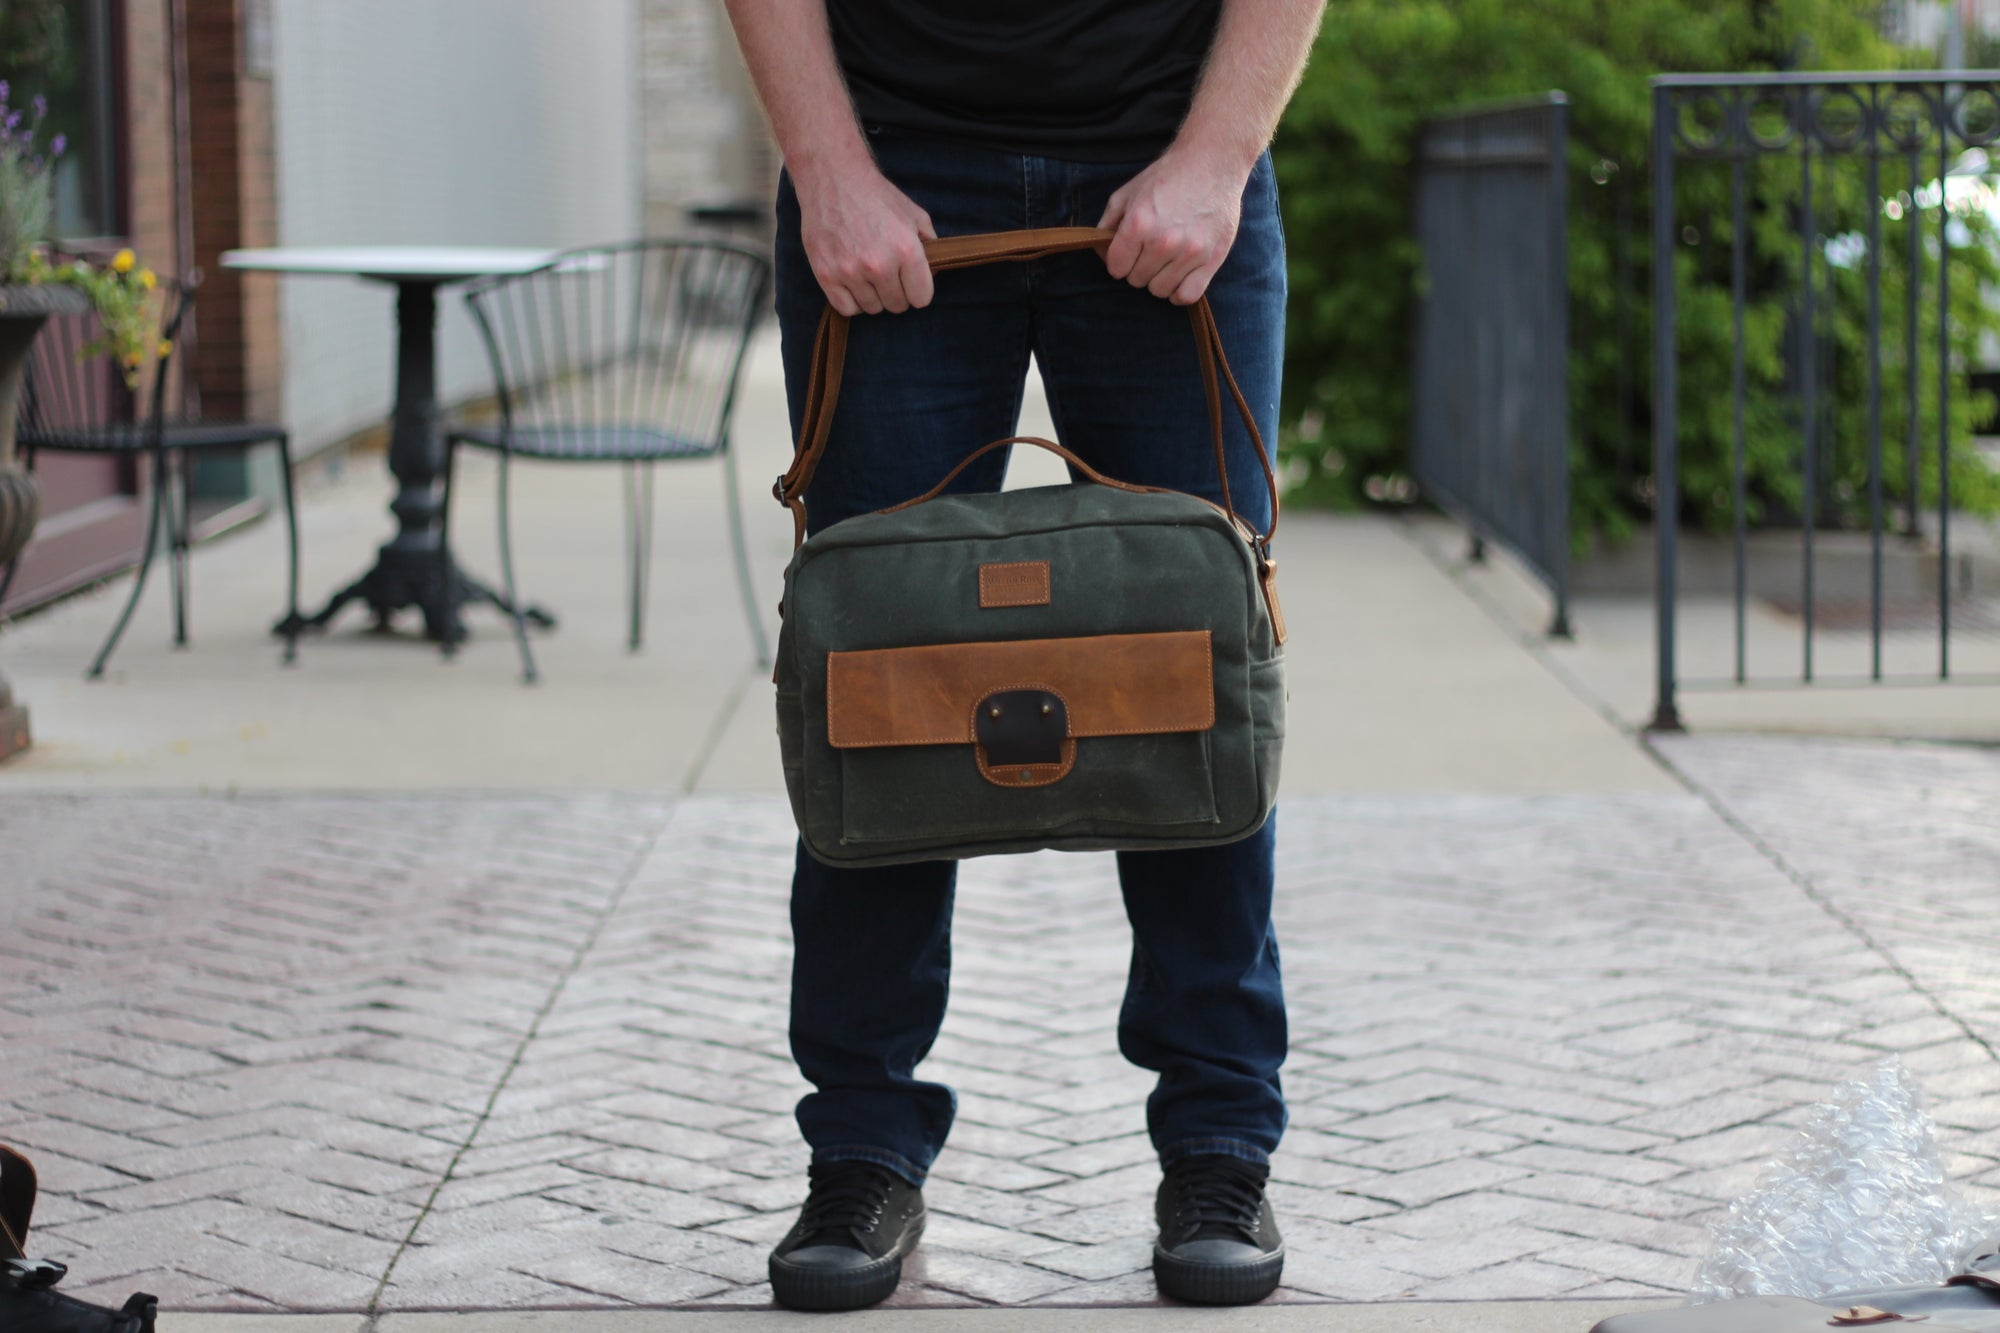 WHY CARRY A TRAVEL/MESSENGER BAG?